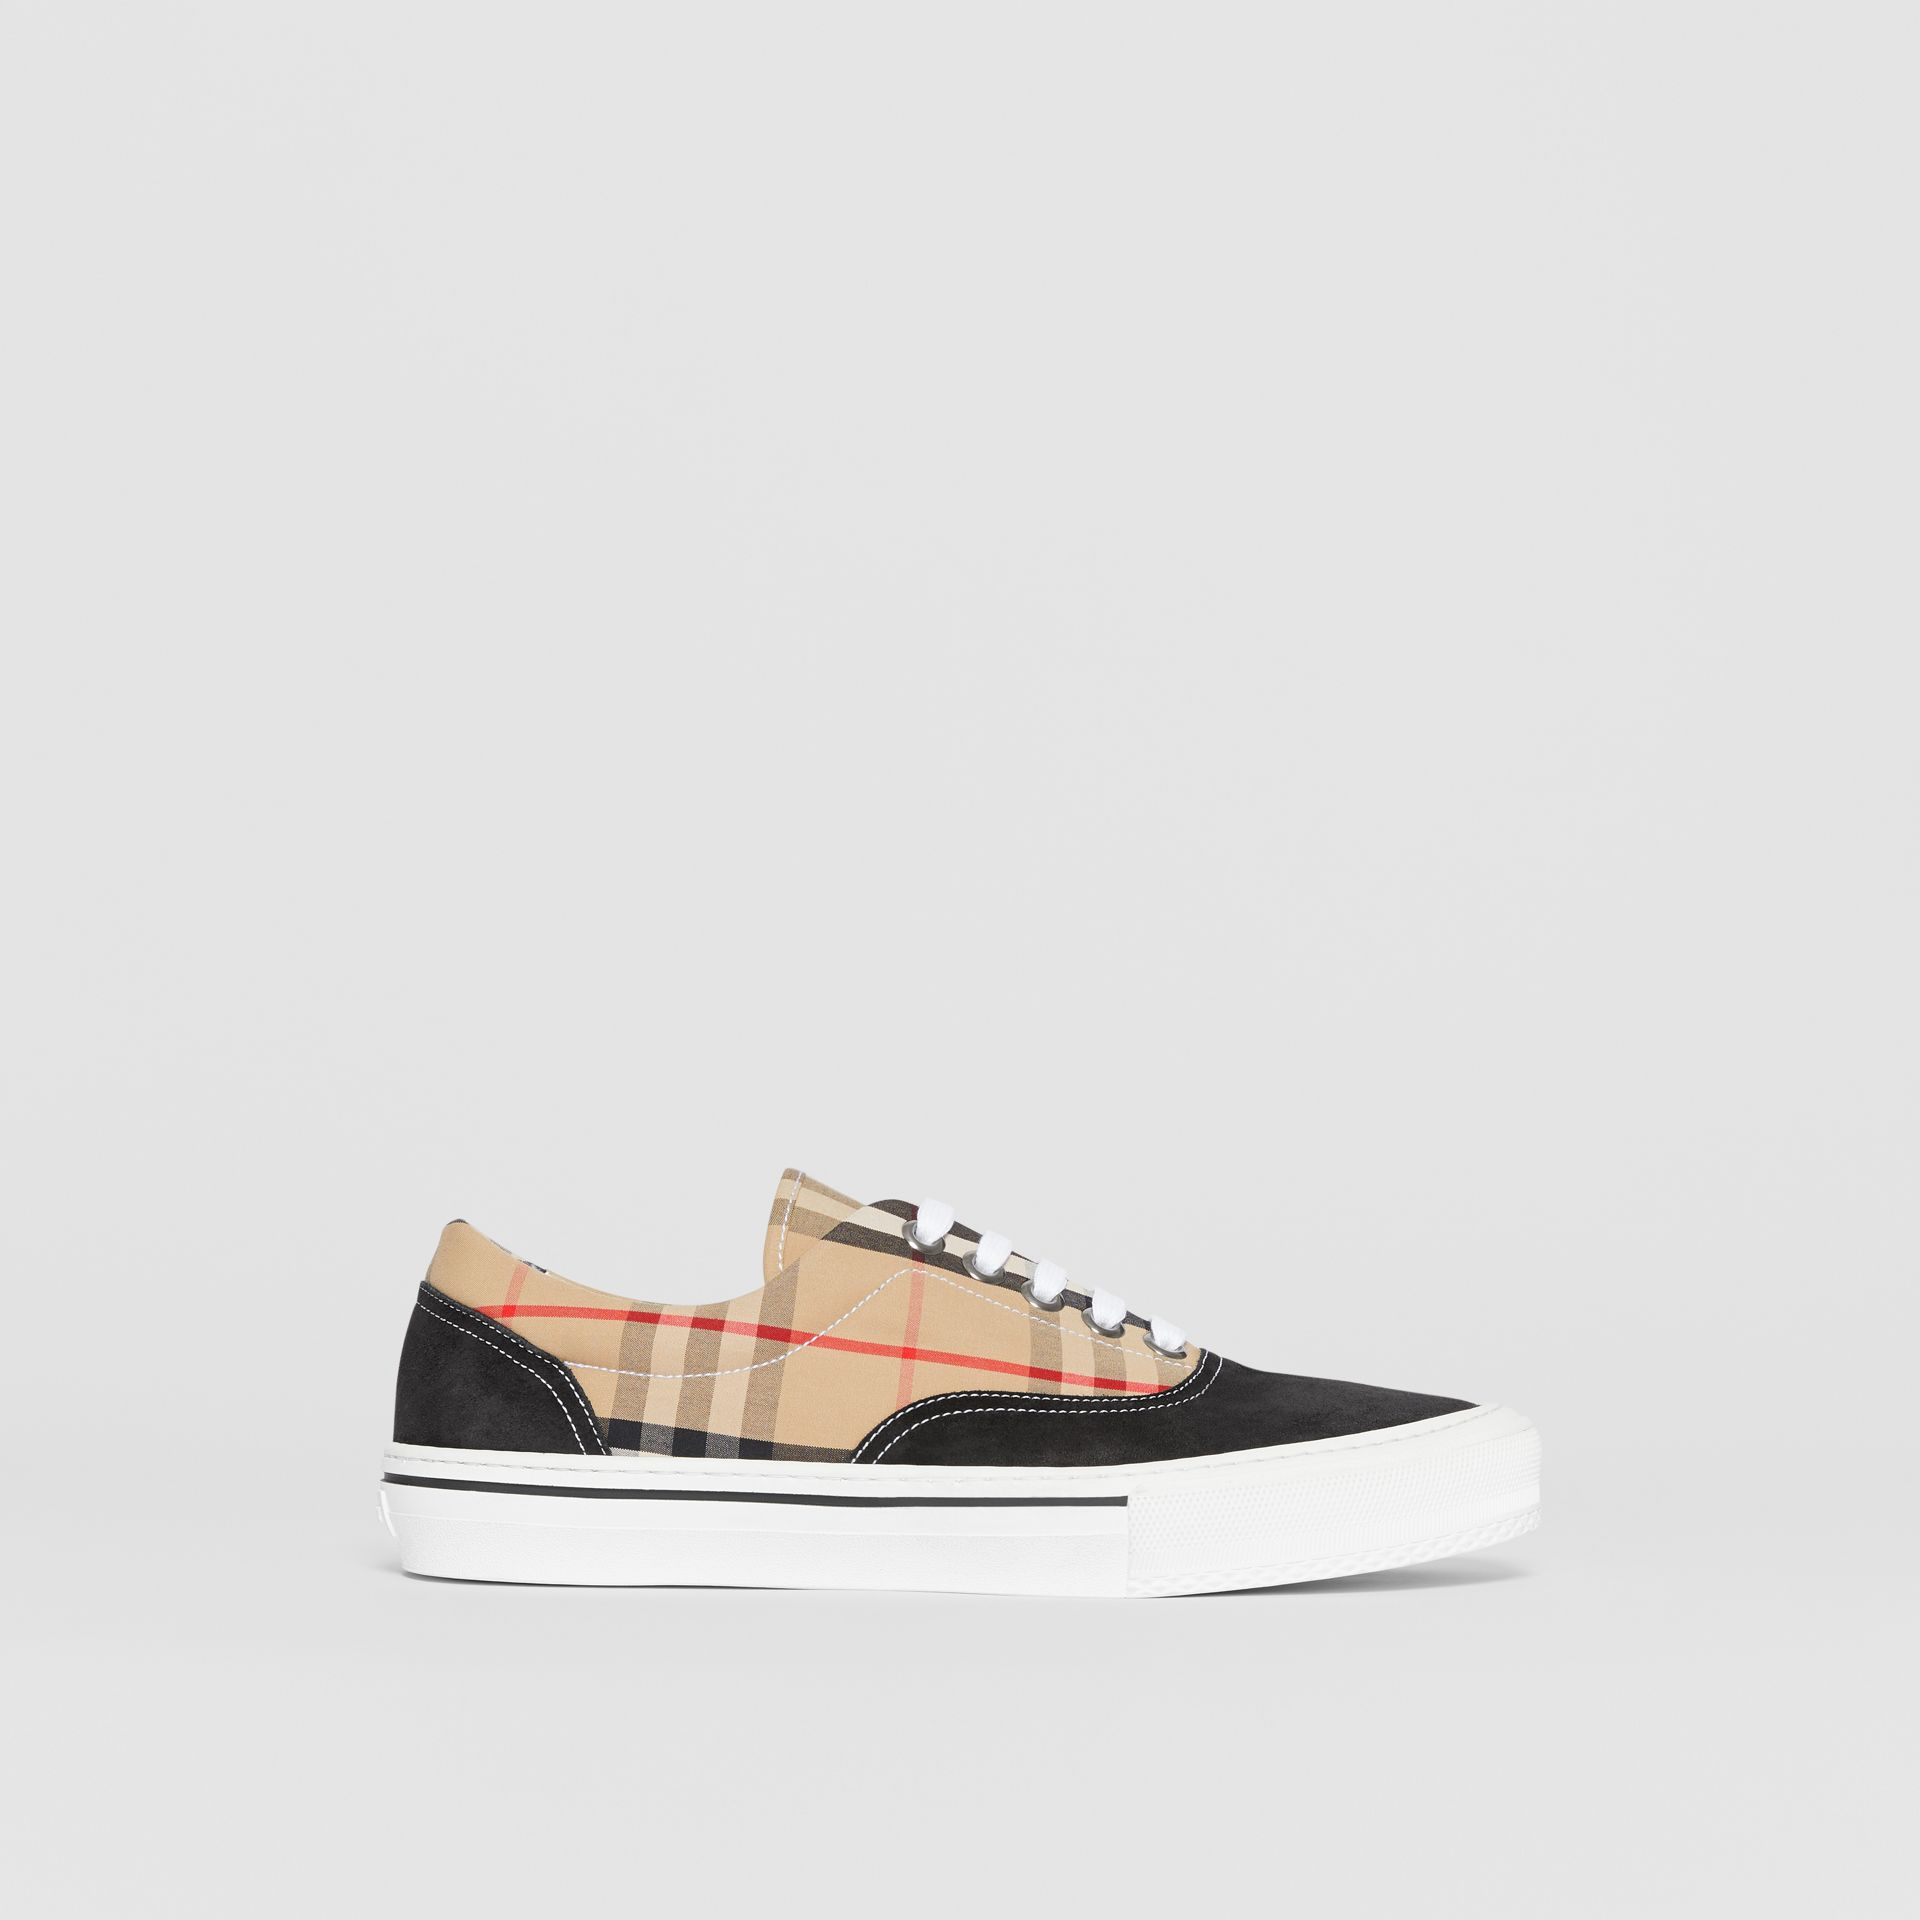 Vintage Check Cotton and Suede Sneakers in Black/archive Beige - Men | Burberry - gallery image 5